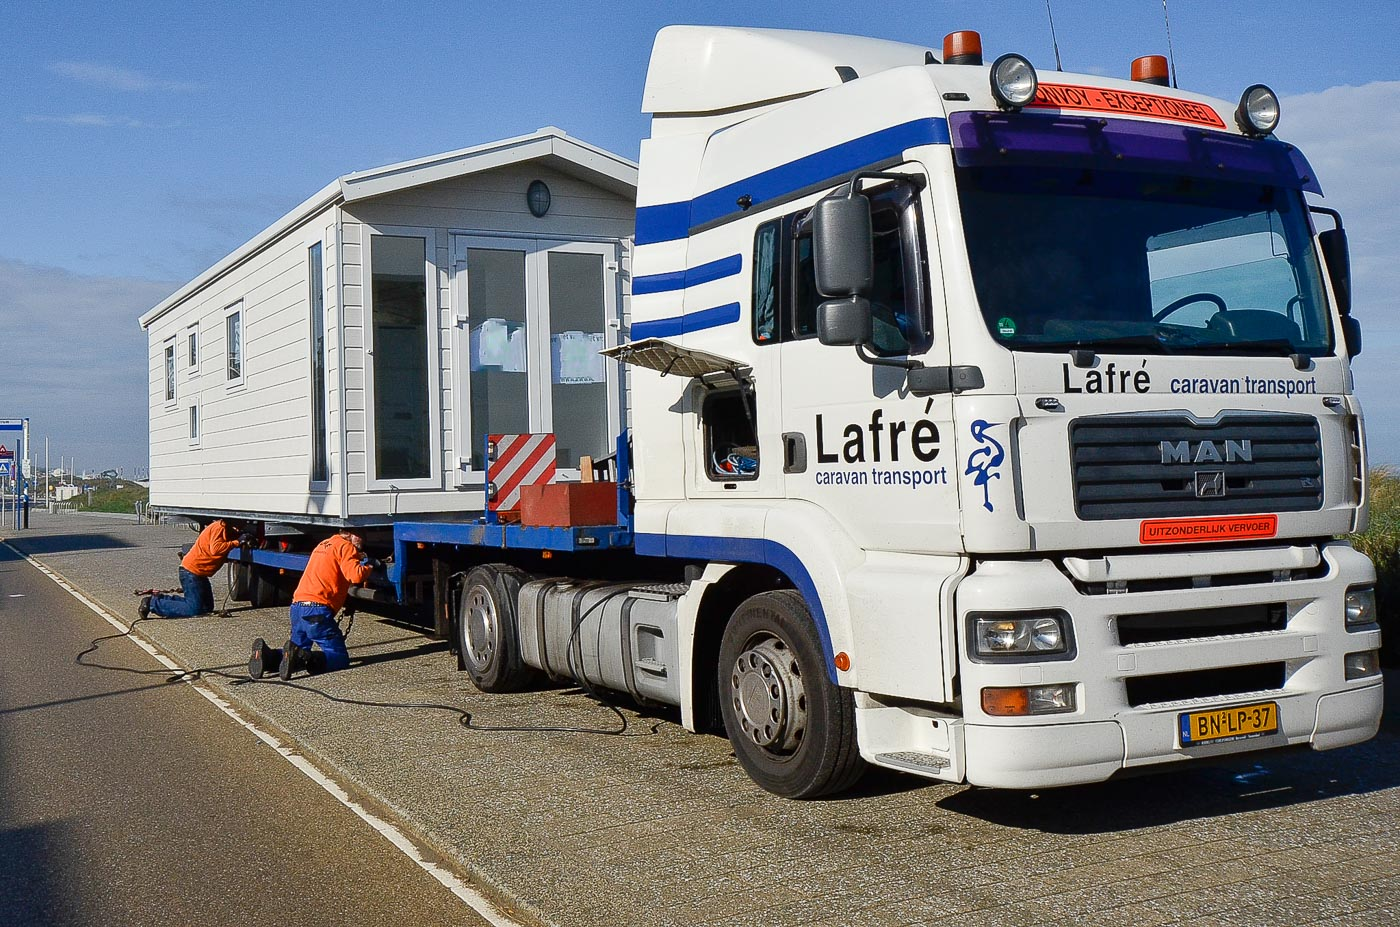 Chaletbouw Goeree transport